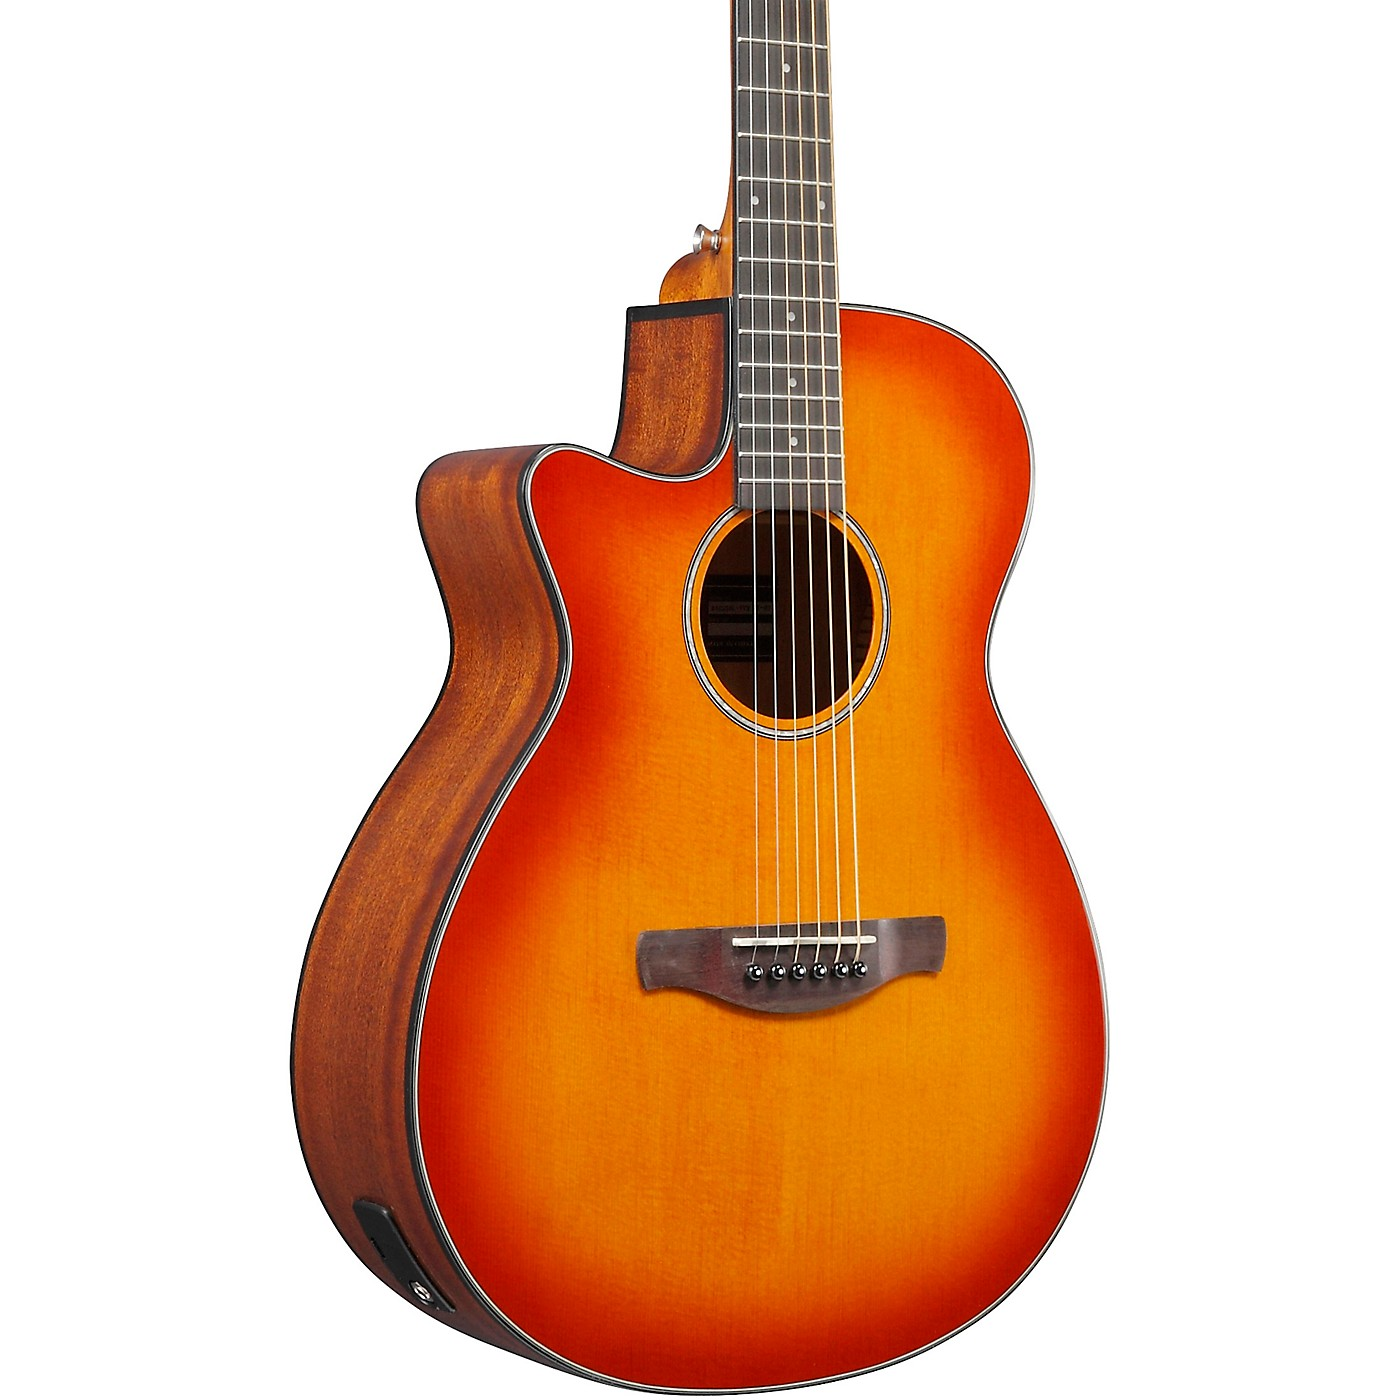 Ibanez AEG58L Cutaway Left-Handed Acoustic Electric Guitar thumbnail